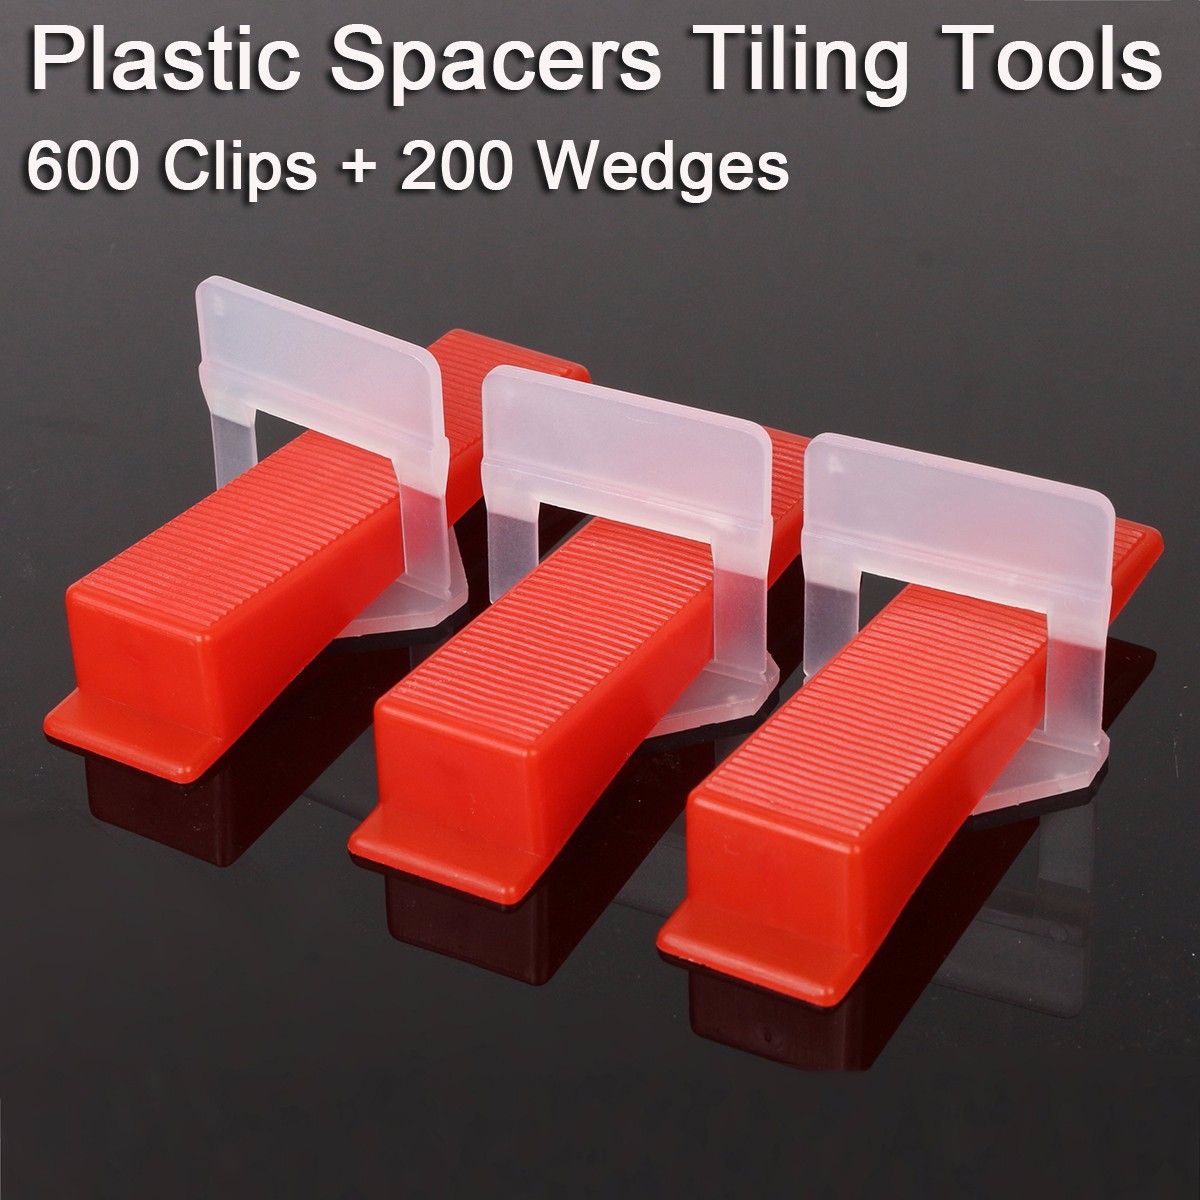 800 Tile Leveling System = 600 Clips + 200 Wedges - Plastic Spacers Tiling Tools Floor Wall Spacers